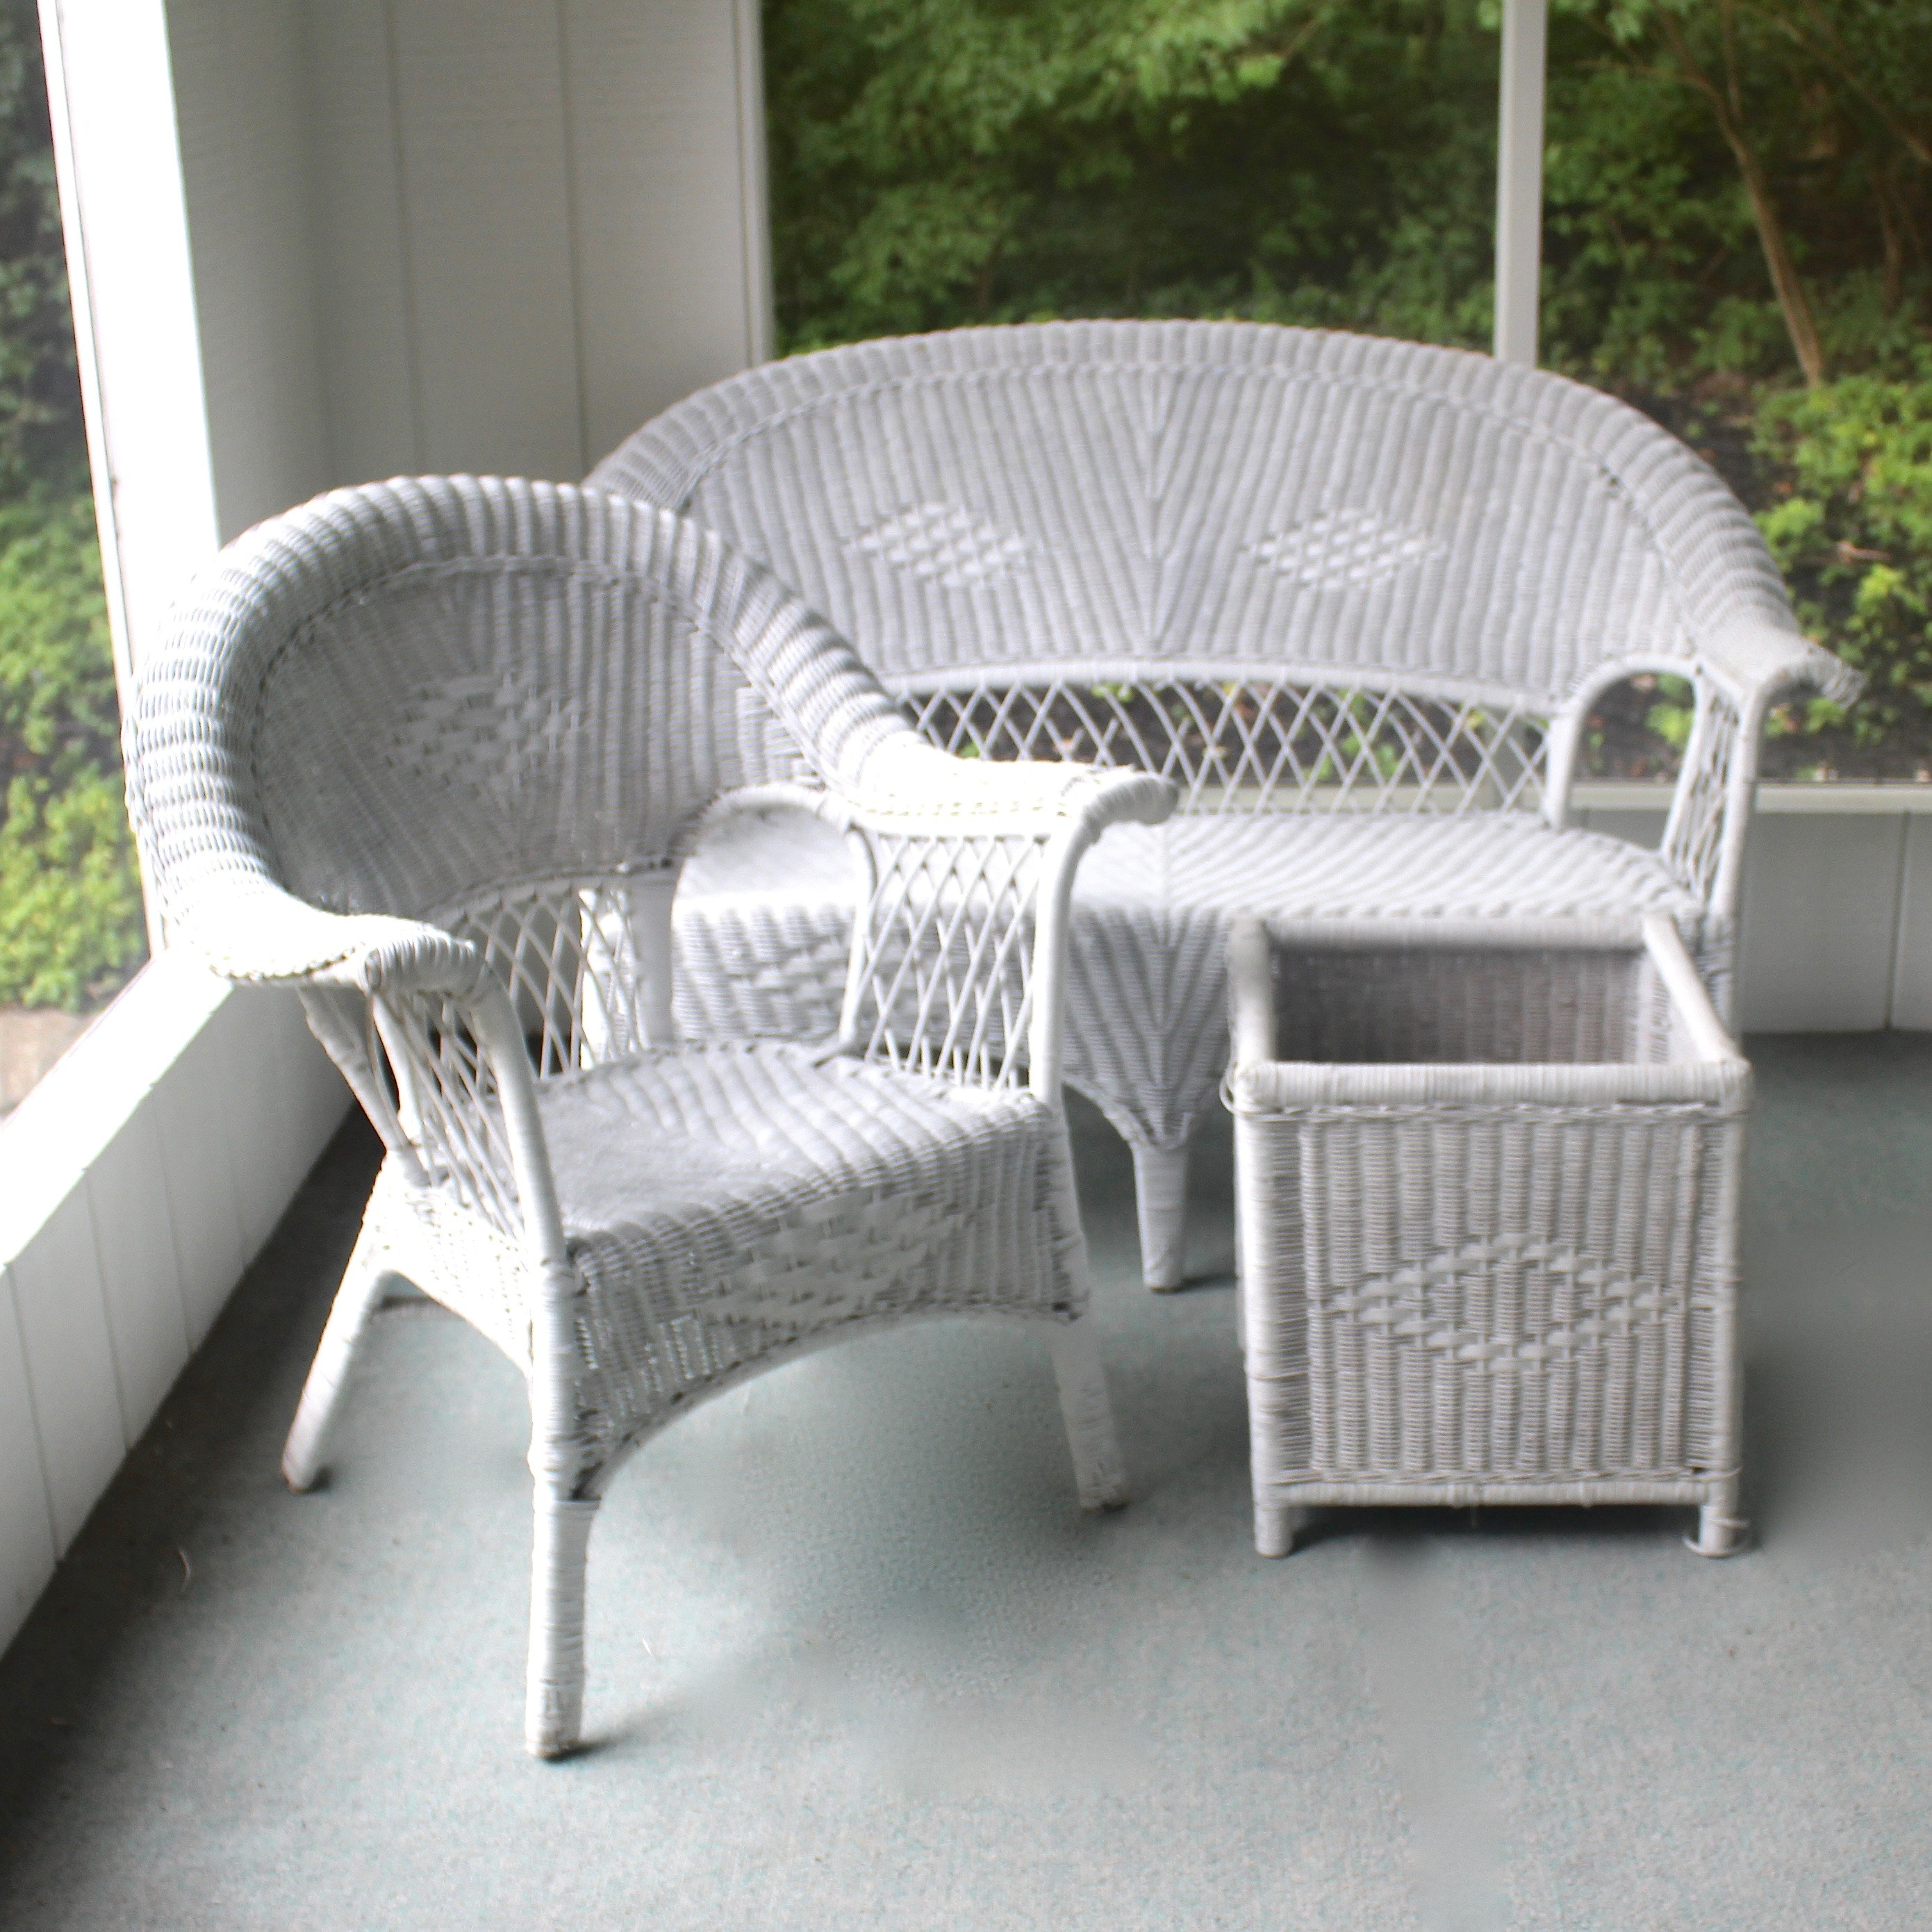 White Wicker Patio Furniture with Loveseat, Chair and Planter